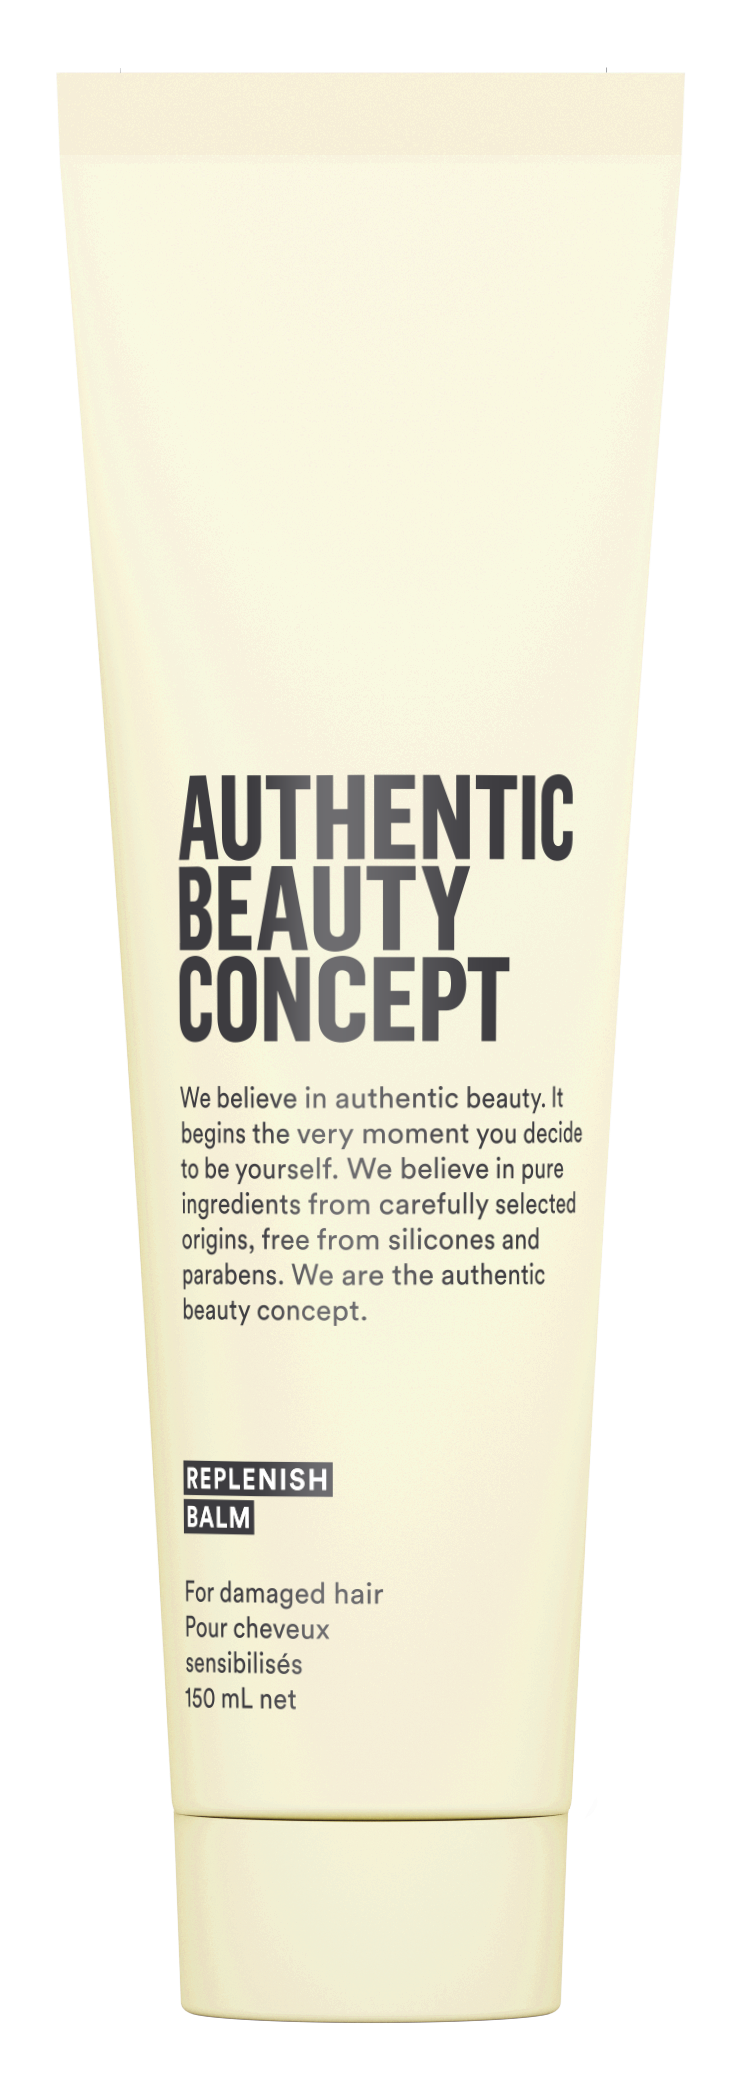 Eds Hair - Authentic Beauty Concept - Replenish Balm 150ml